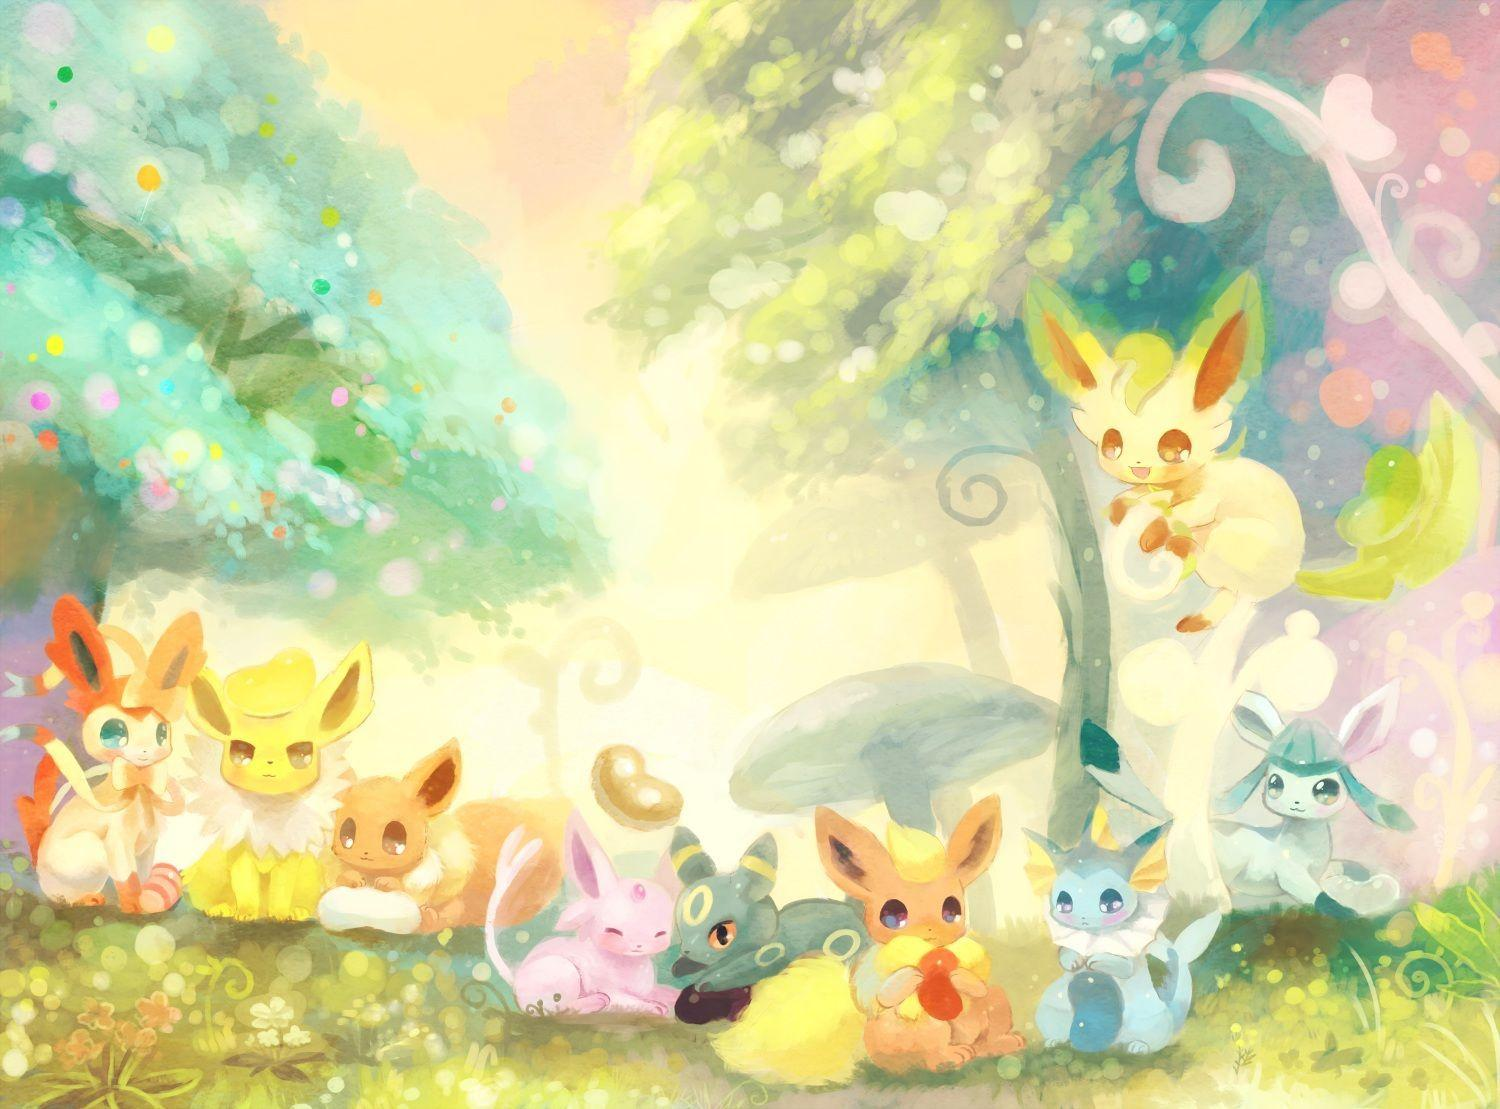 eeveelutions wallpaper - photo #47